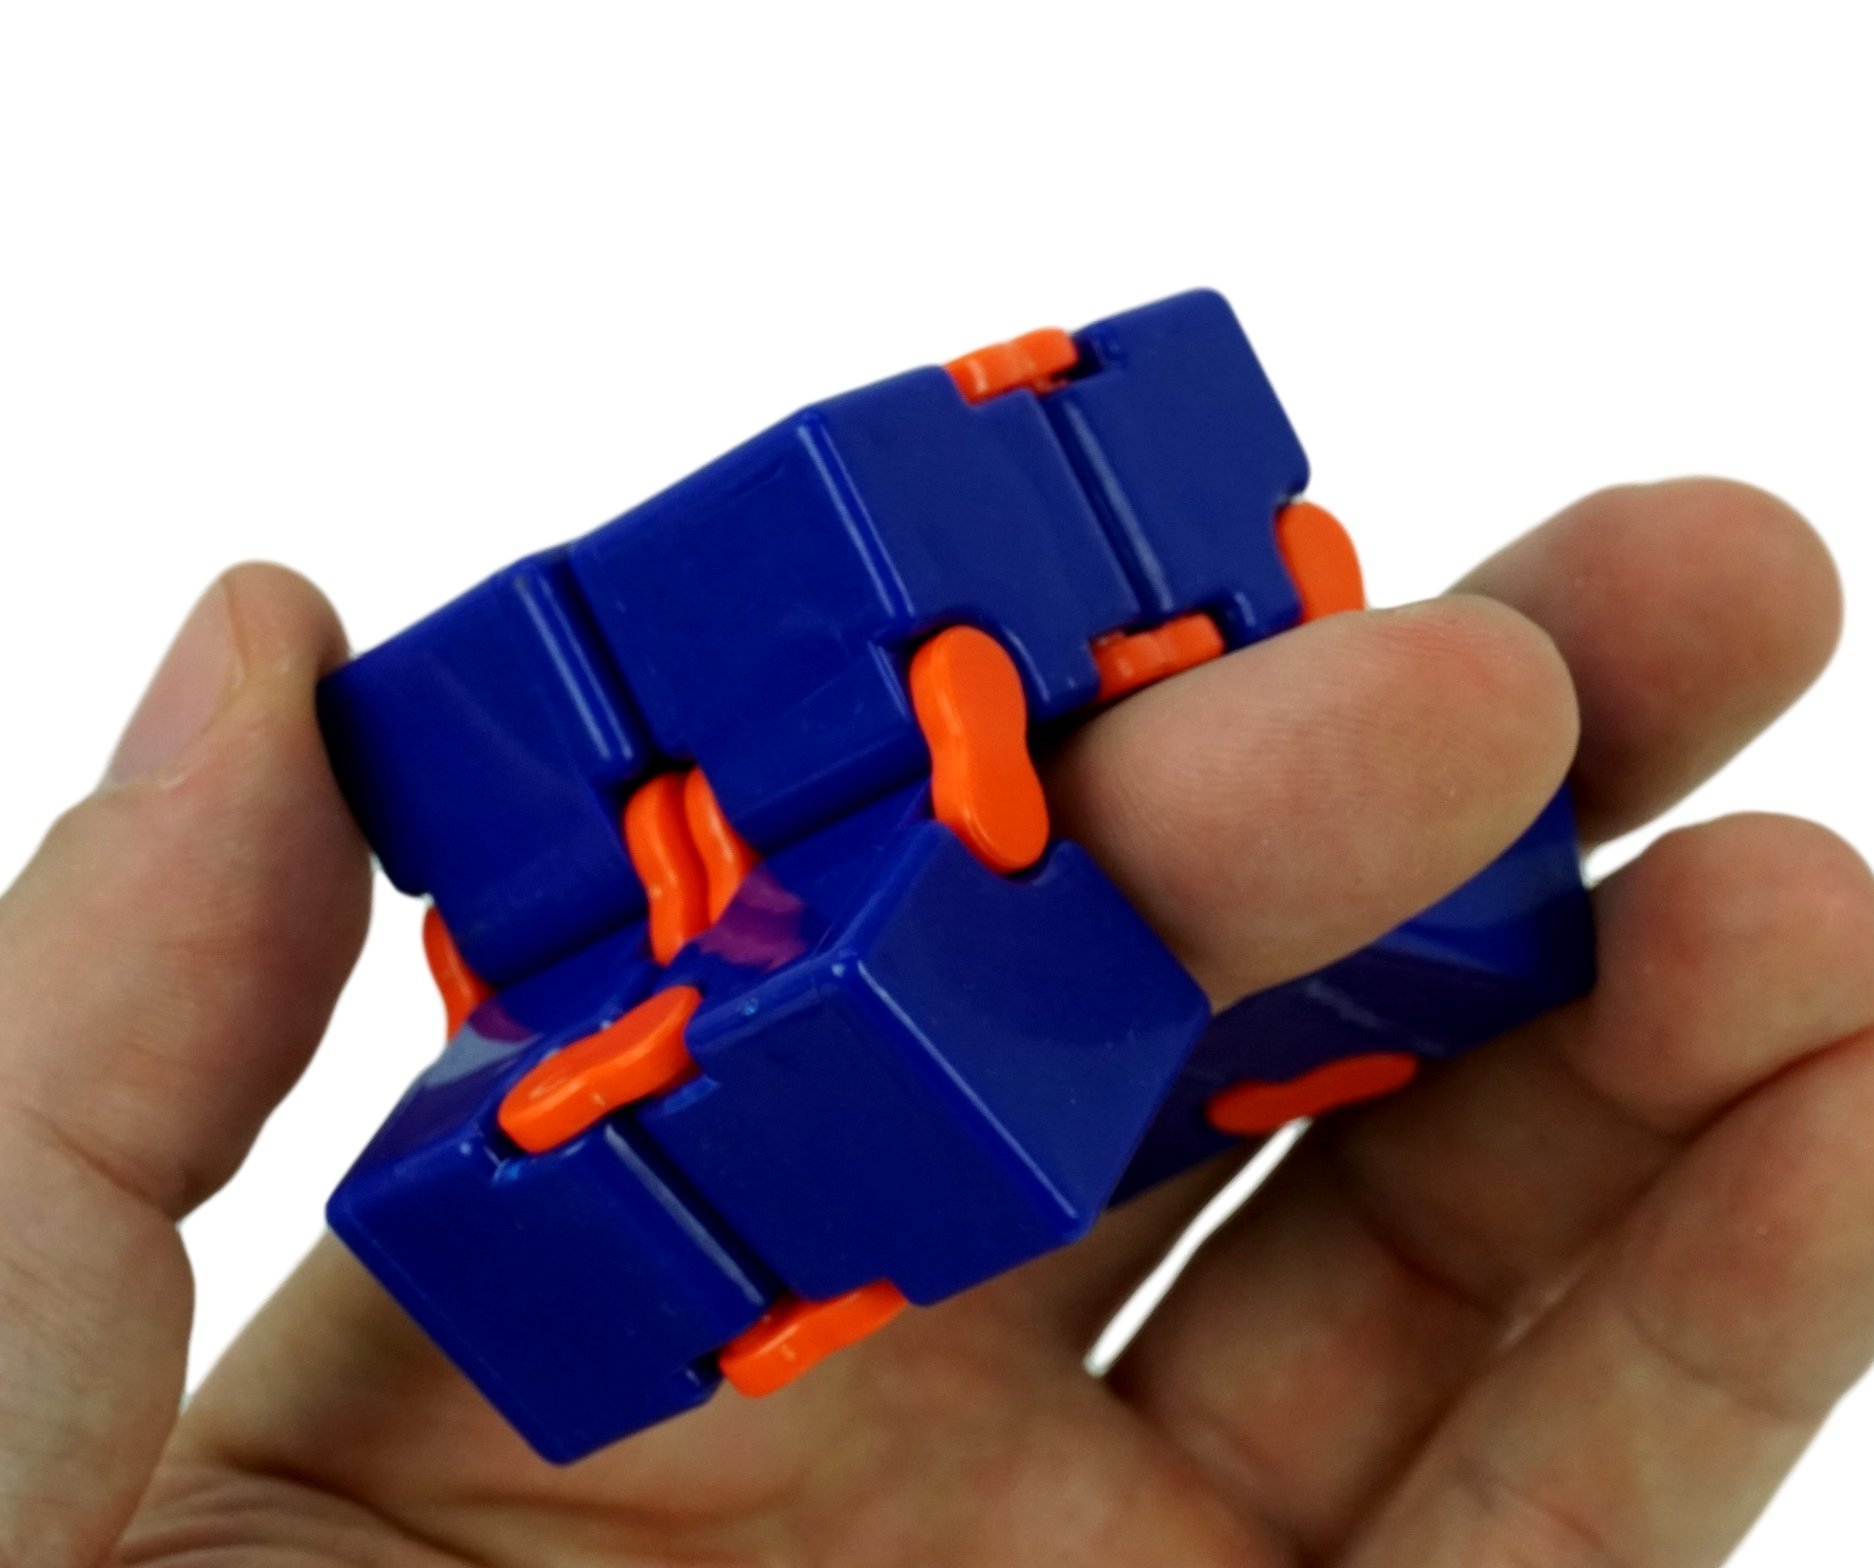 2GoodShop Kubix Speed Cube Fidget Cube Flip It Endlessly to Keep Your Fingers Busy and Your Mind Focused Pack of 24   Item #3802 by 2GoodShop (Image #5)